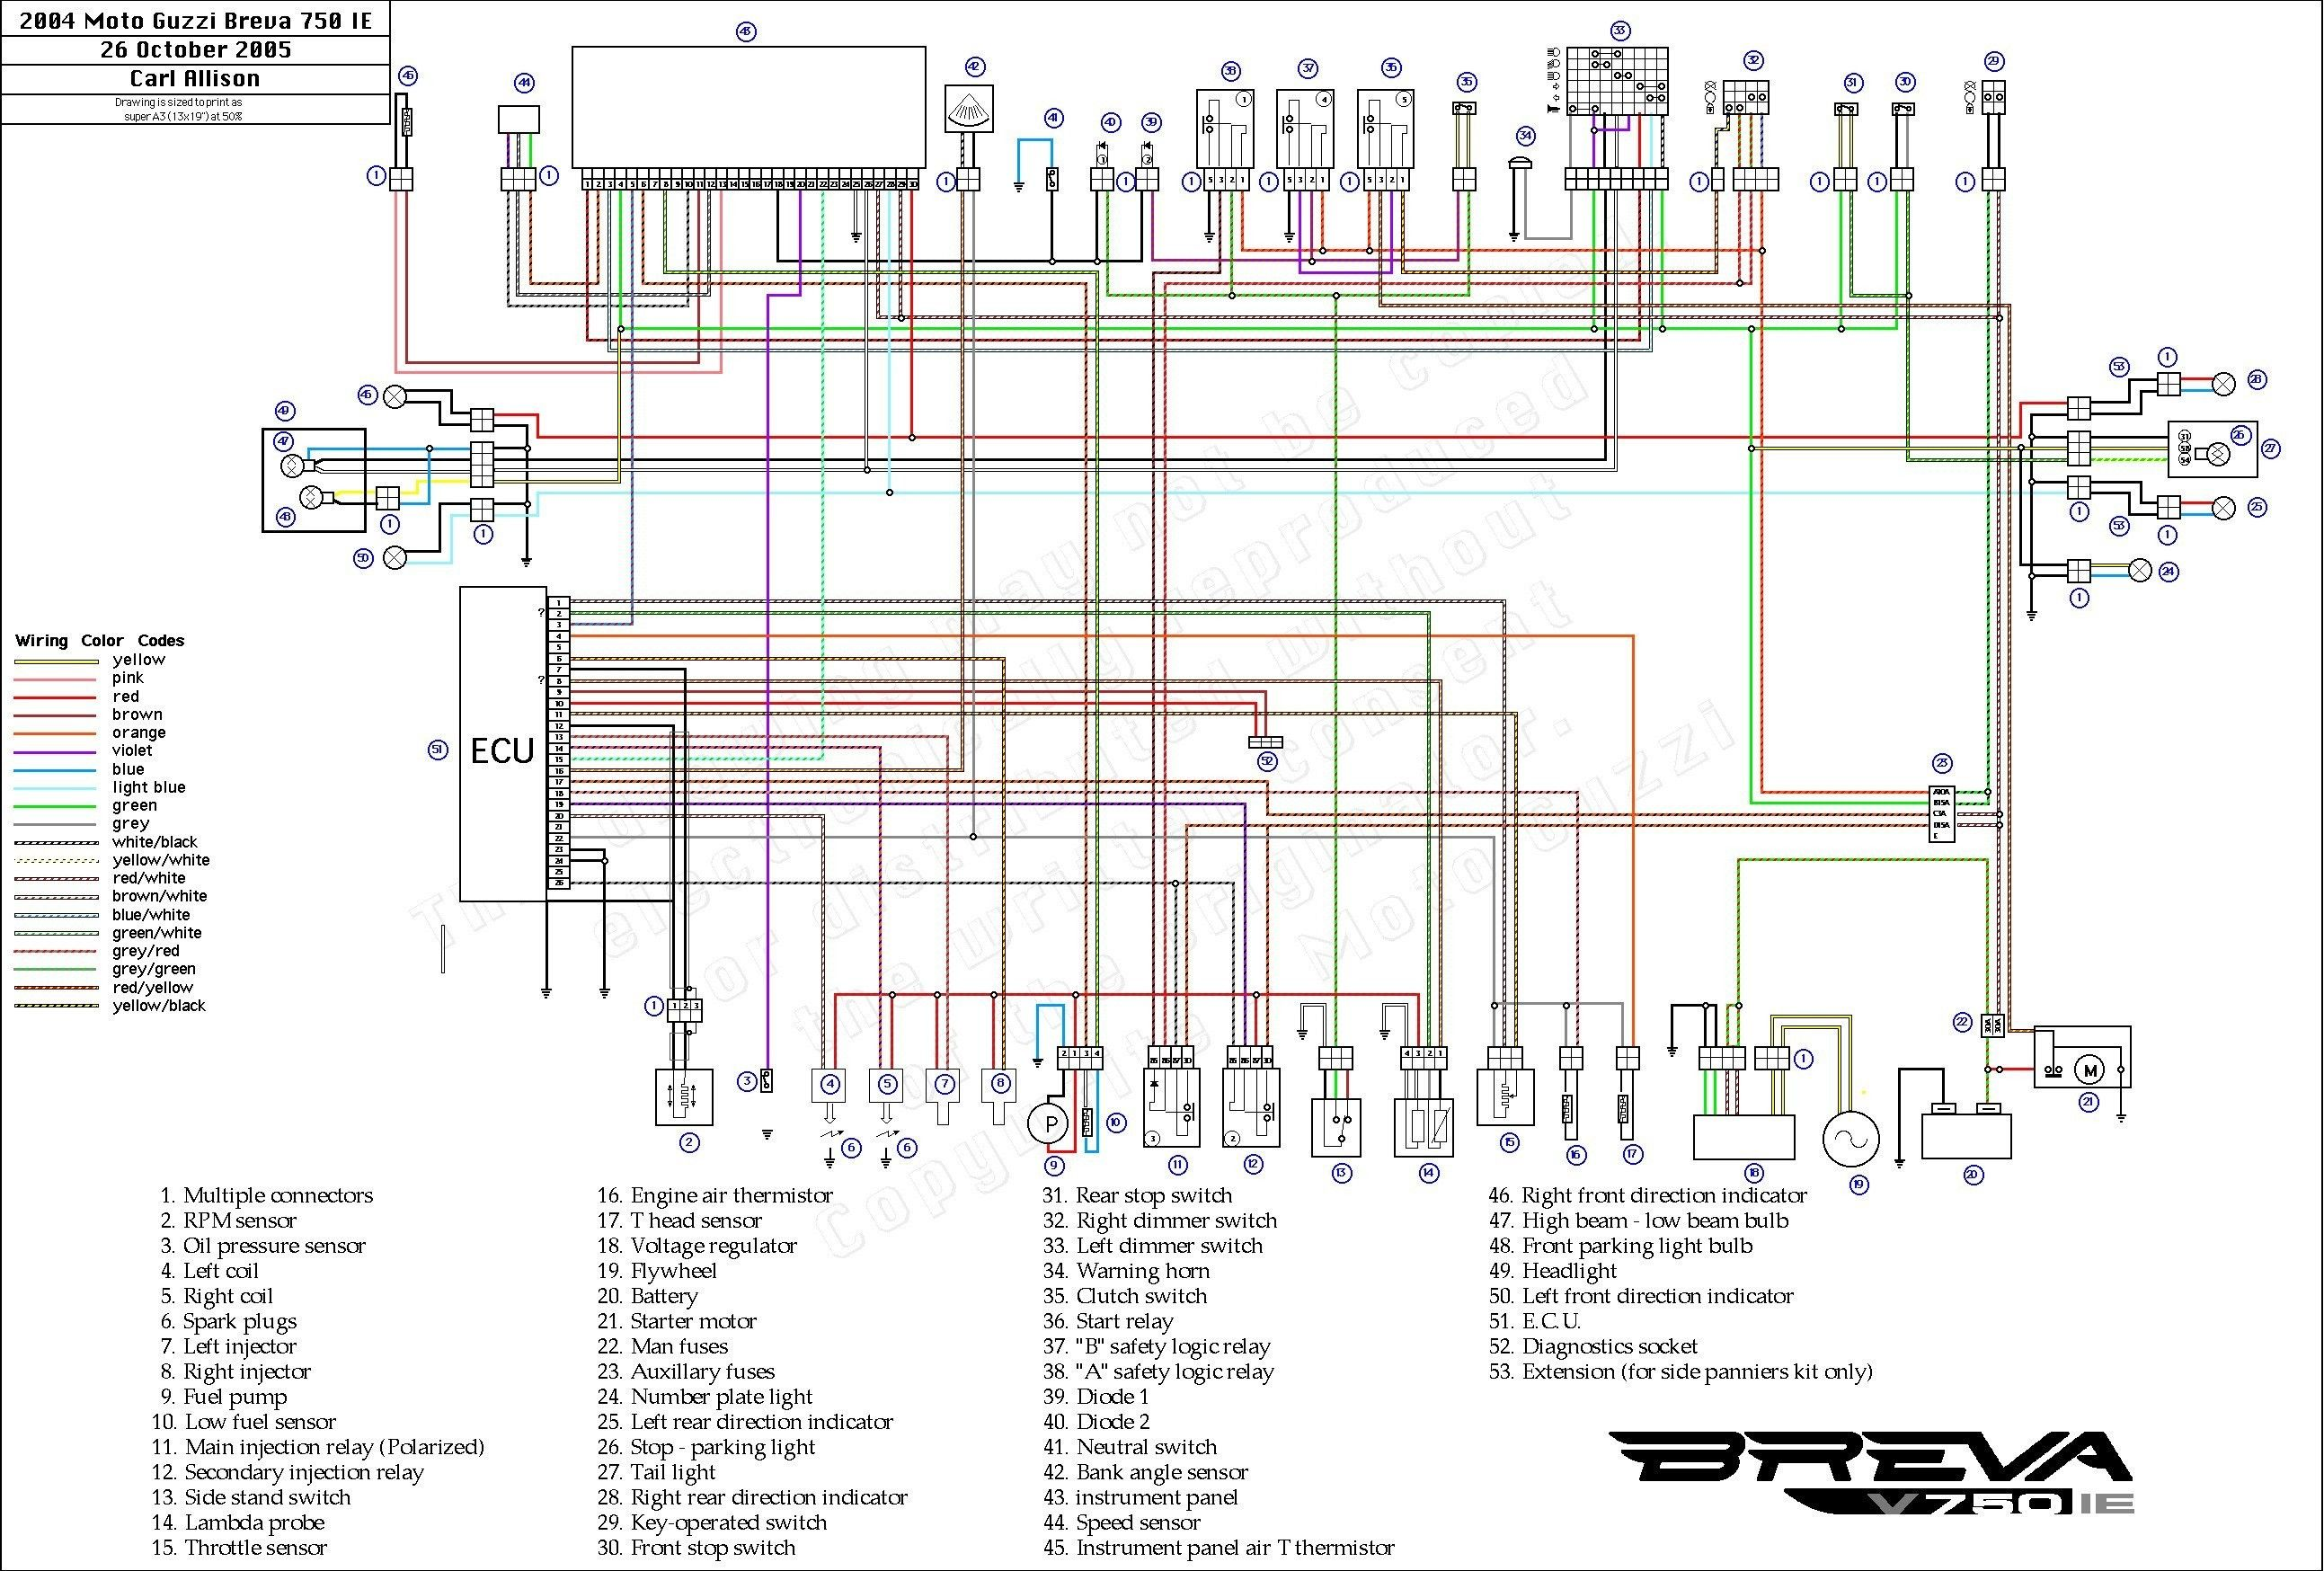 Unique Dimmer Switch Wiring Diagram Manual Diagram Diagramtemplate Diagramsample Conectores Electricos Ingenieria Electronica Honda Wave